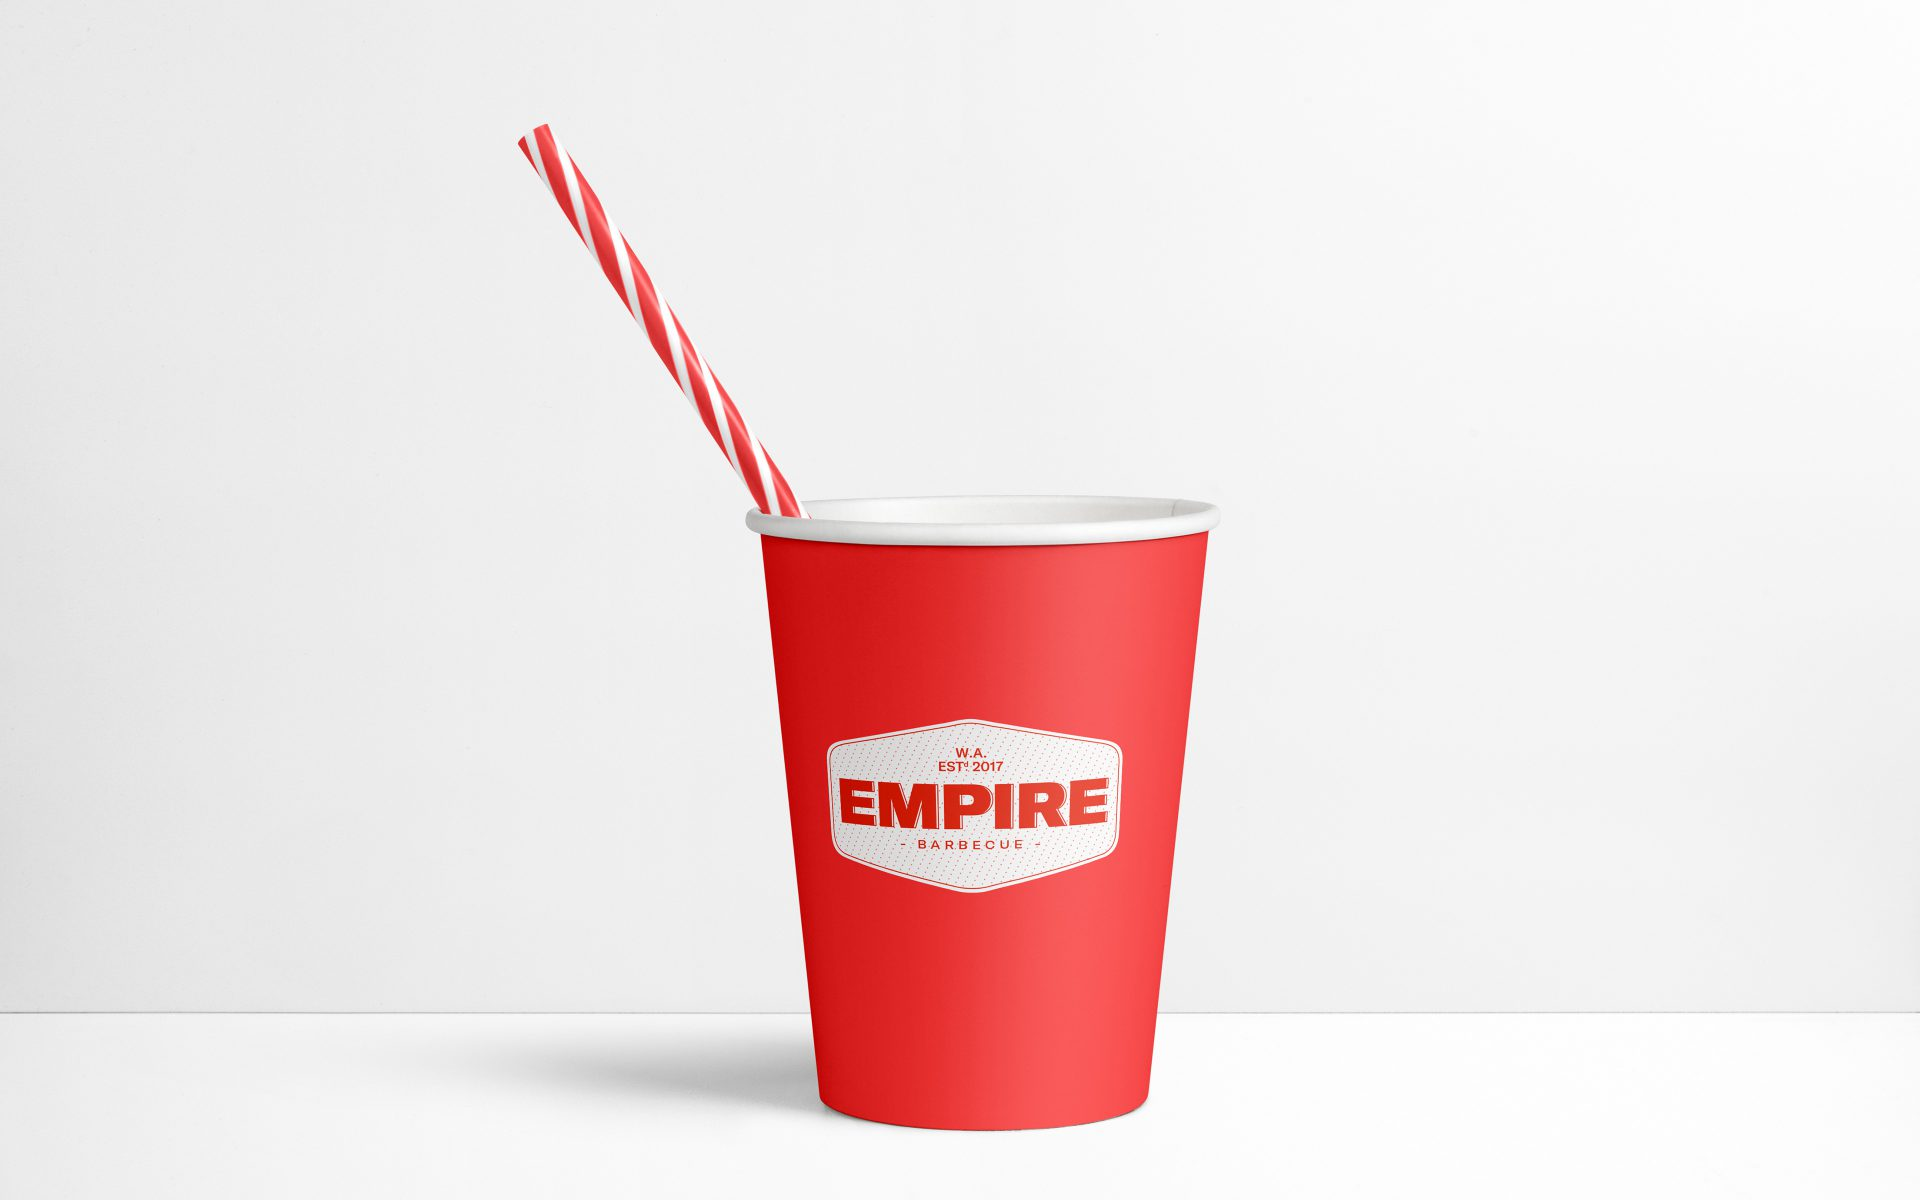 Empire BBQ brand logo on red take away cup with straw